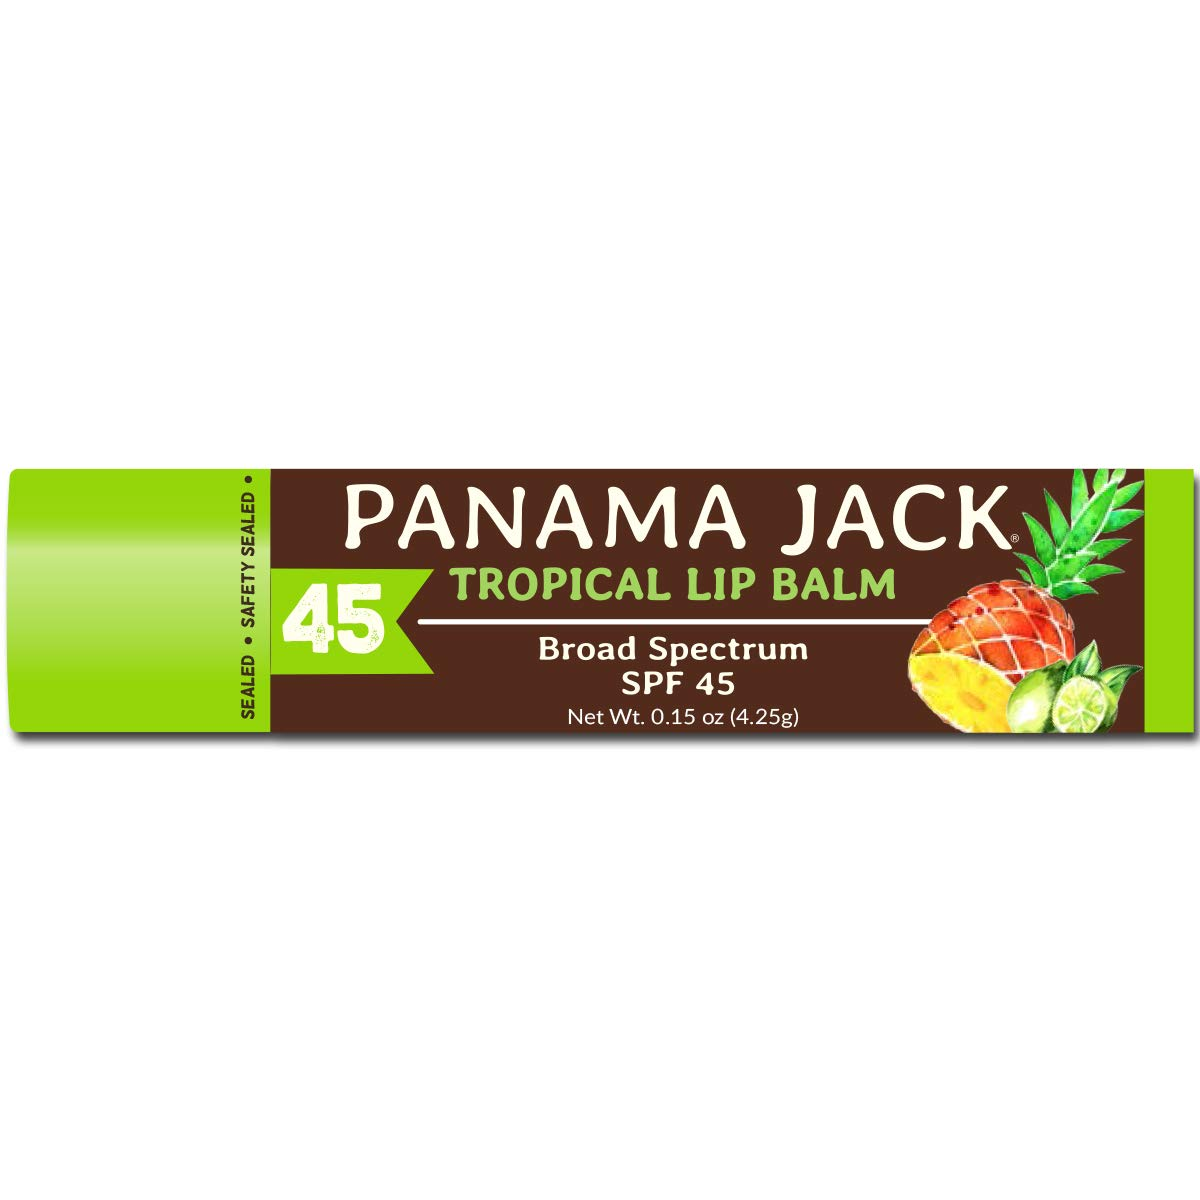 Panama Jack Tropical Lip Balm - SPF 45, Broad Spectrum UVA-UVB Sunscreen Protection, Prevents & Soothes Dry, Chapped Lips by Panama Jack